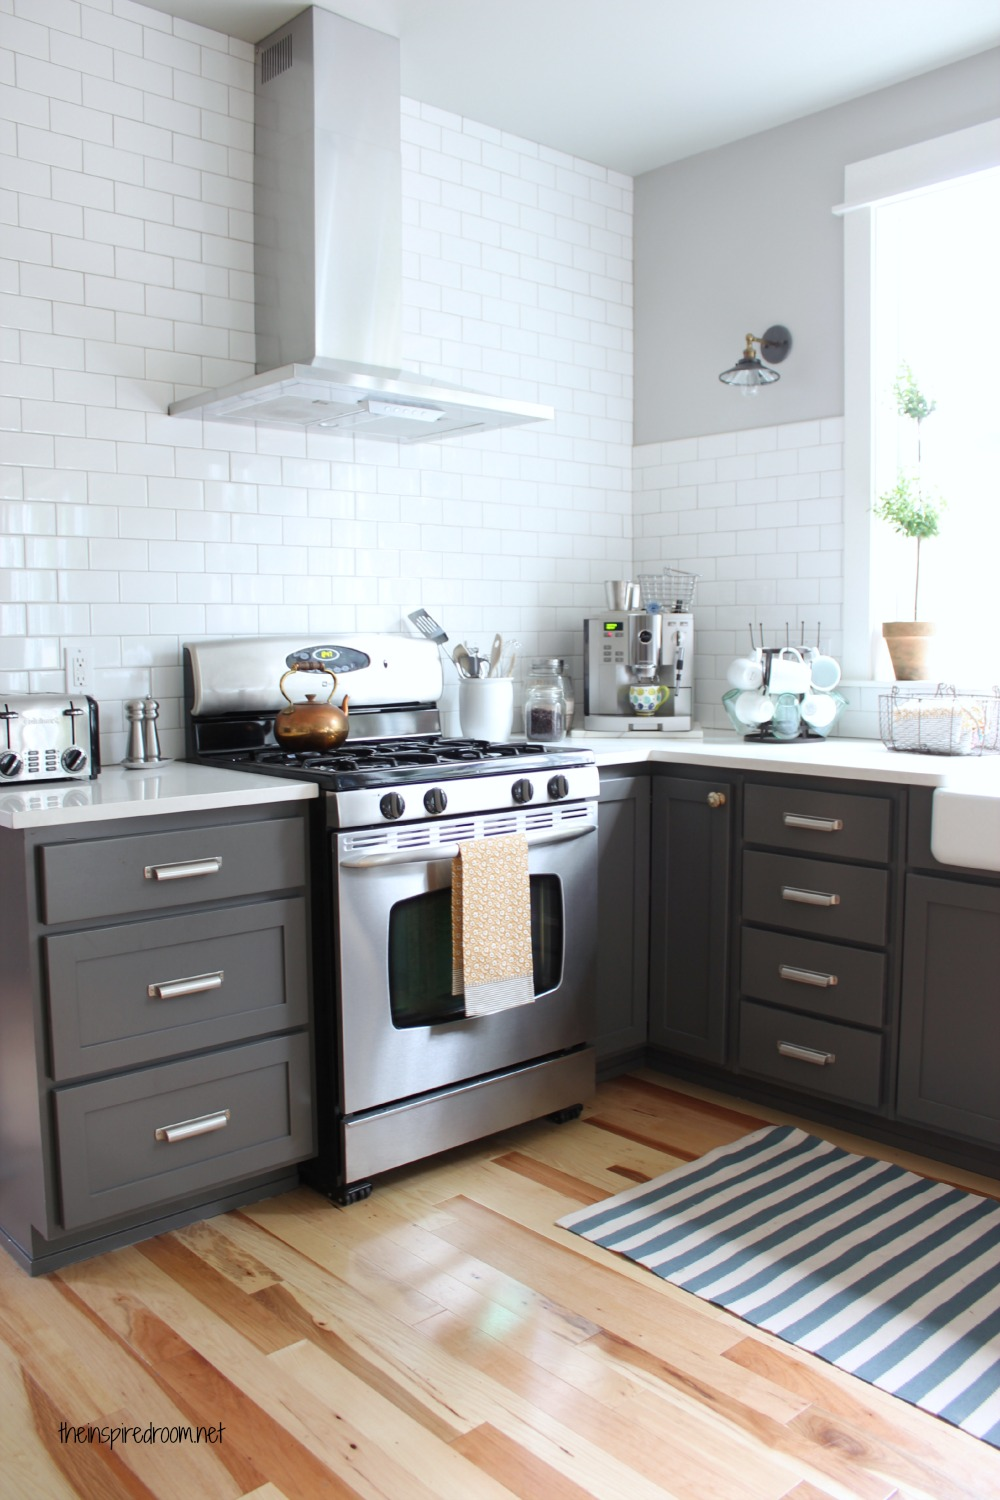 Bar pulls for kitchen cabinets photo - 3